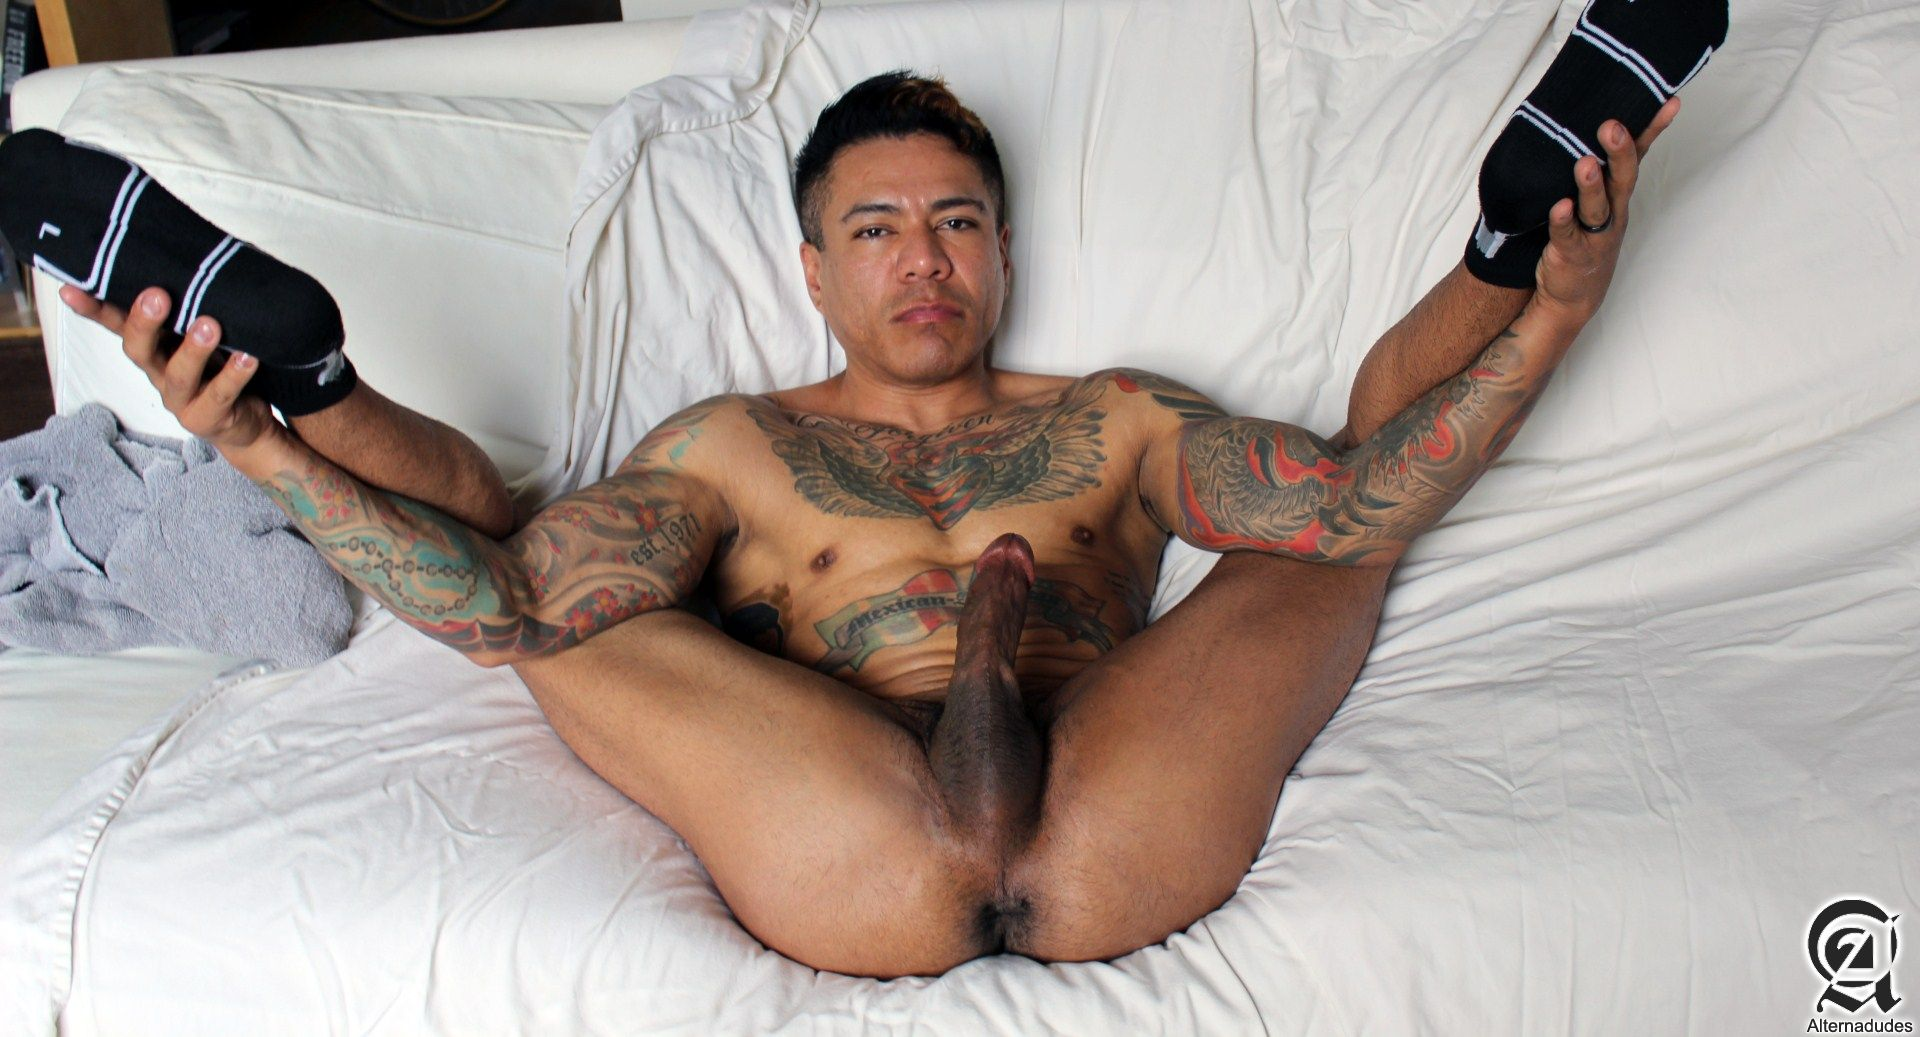 Alternadudes-Maxx-Sanchez-Tatted-Mexican-Daddy-Big-Cock-Amateur-Gay-Porn-03 Amateur Tatted Latino Daddy Shot A Load In His Mouth